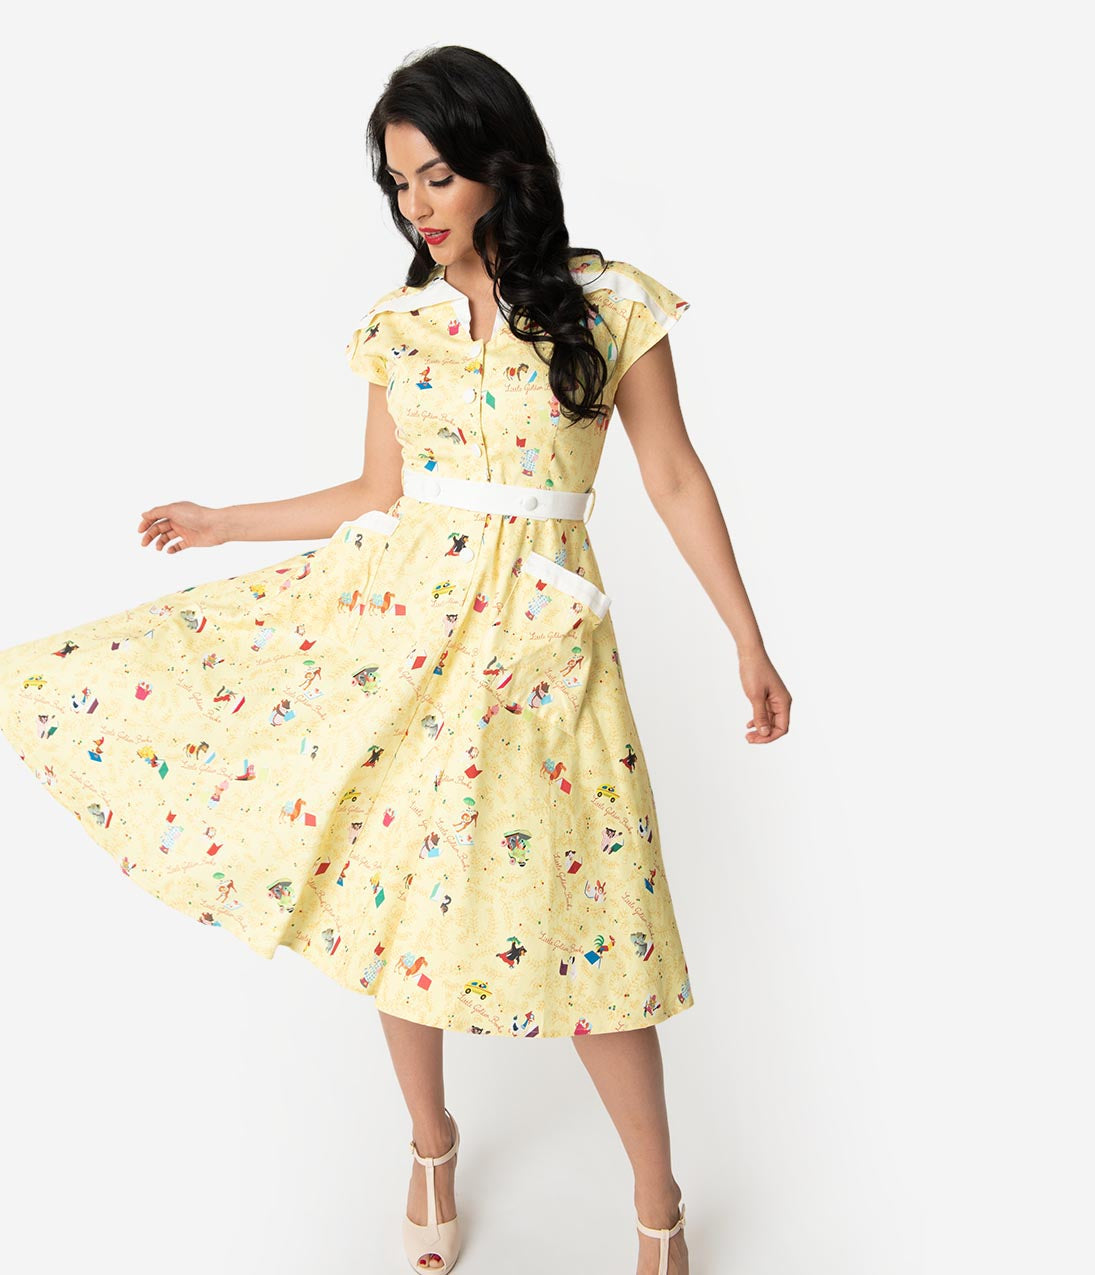 1940s Fashion Advice for Tall Women Little Golden Books X Unique Vintage Yellow Print Hedda Swing Dress $148.00 AT vintagedancer.com